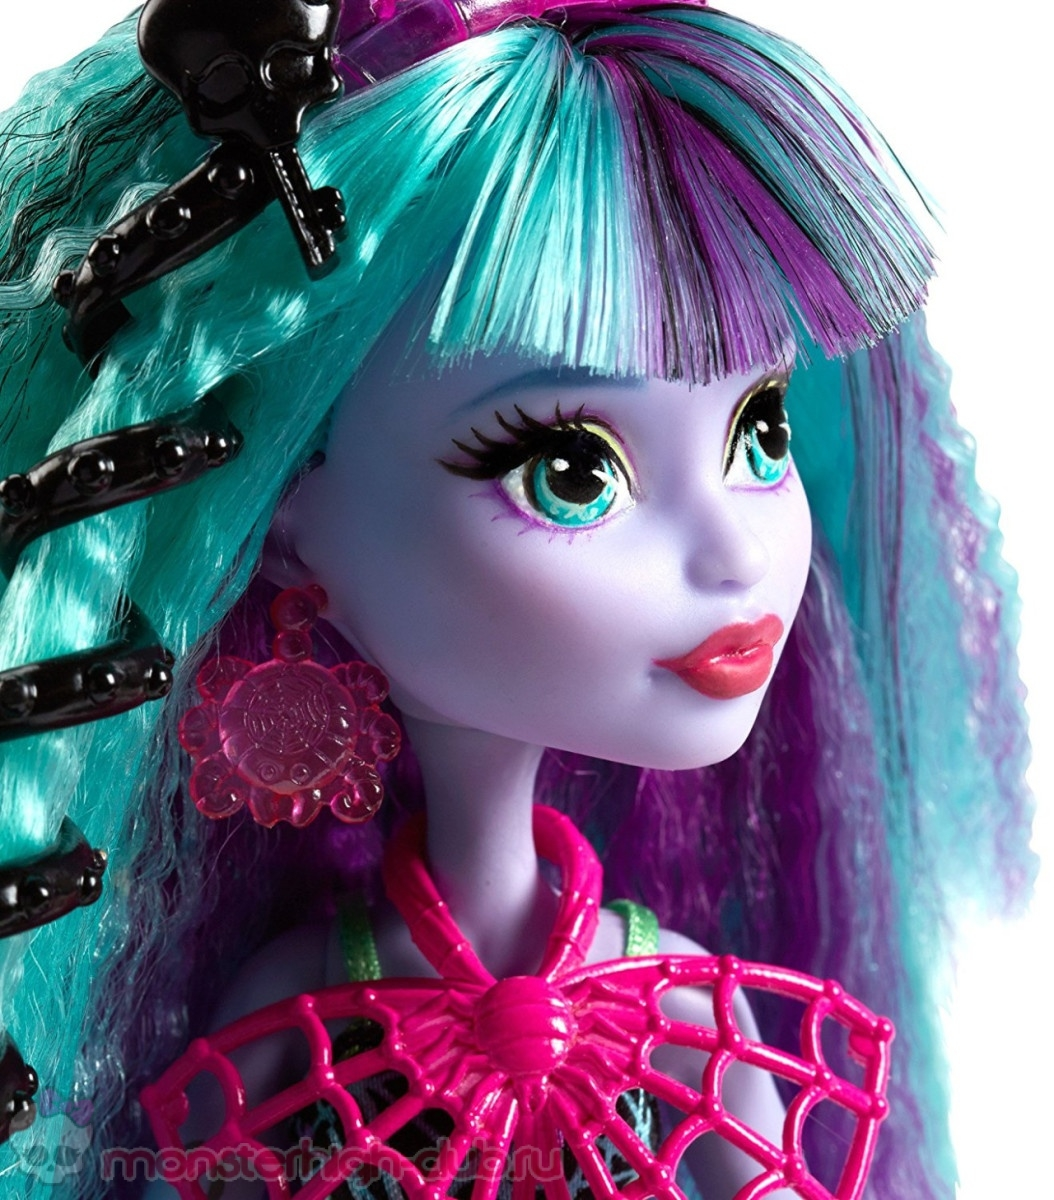 monster_high-twyla_electrified-new-2016-doll-mattel (5)